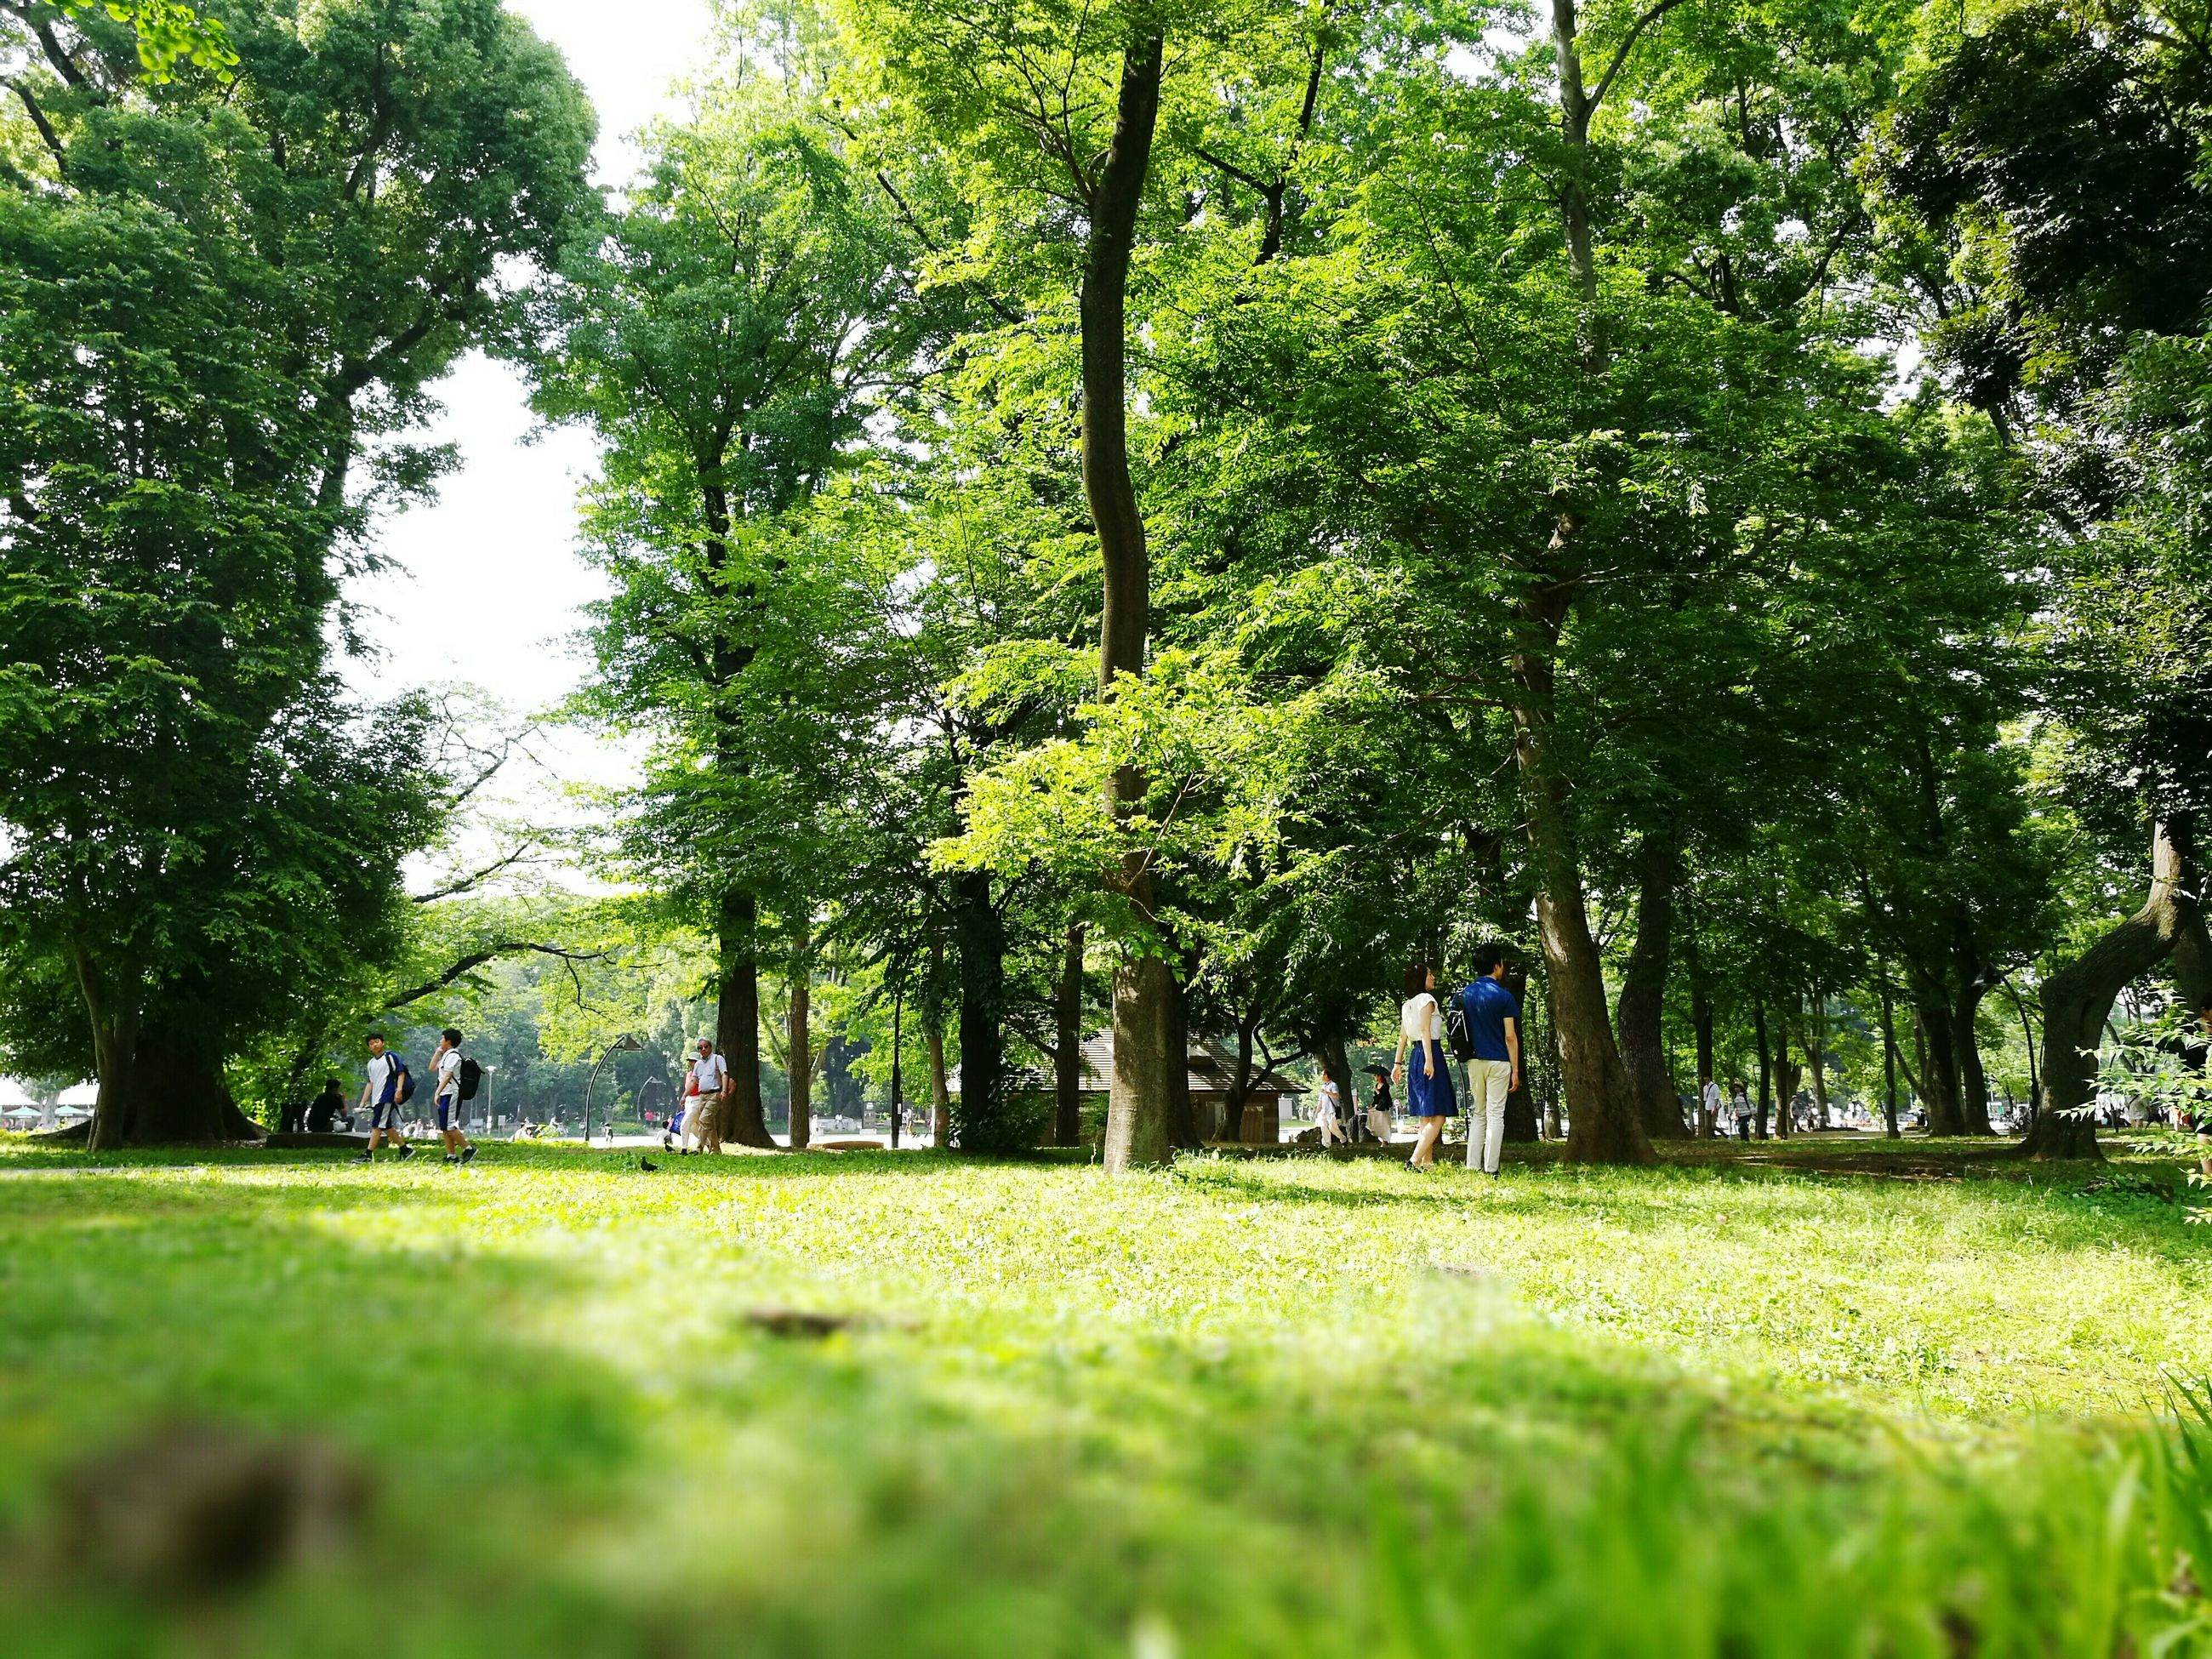 tree, grass, green color, growth, park - man made space, tranquility, nature, lawn, park, grassy, sunlight, tranquil scene, field, tree trunk, beauty in nature, branch, shadow, incidental people, bench, day